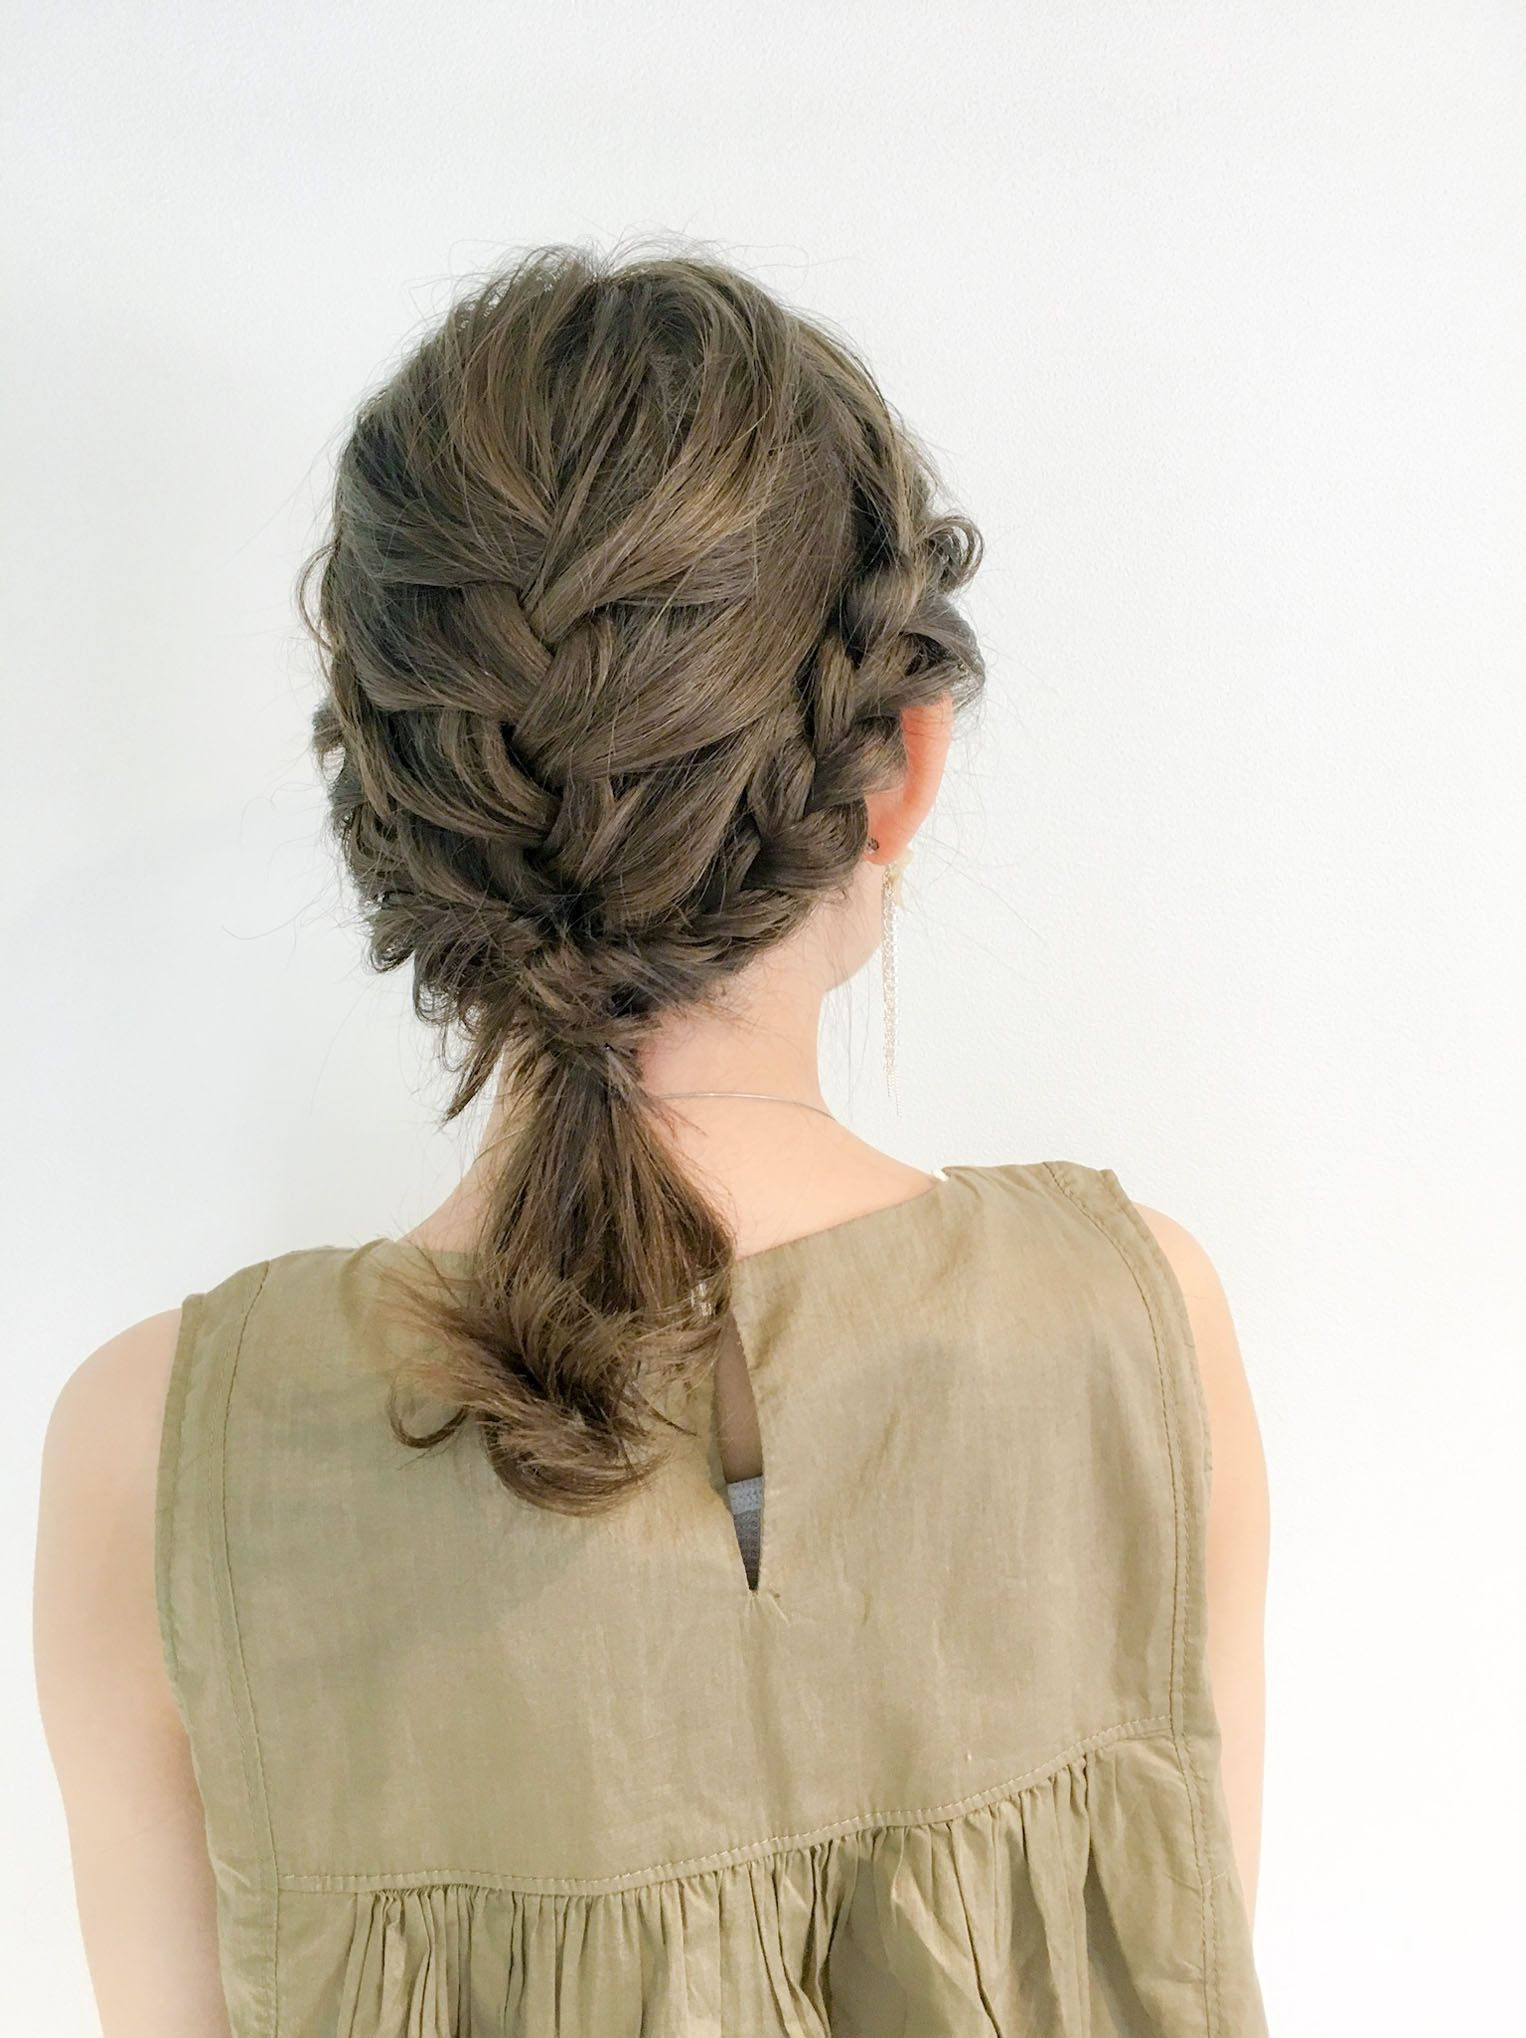 22 Best Short Casual Hairstyles Ideas For Summer Heat 2018 Styling